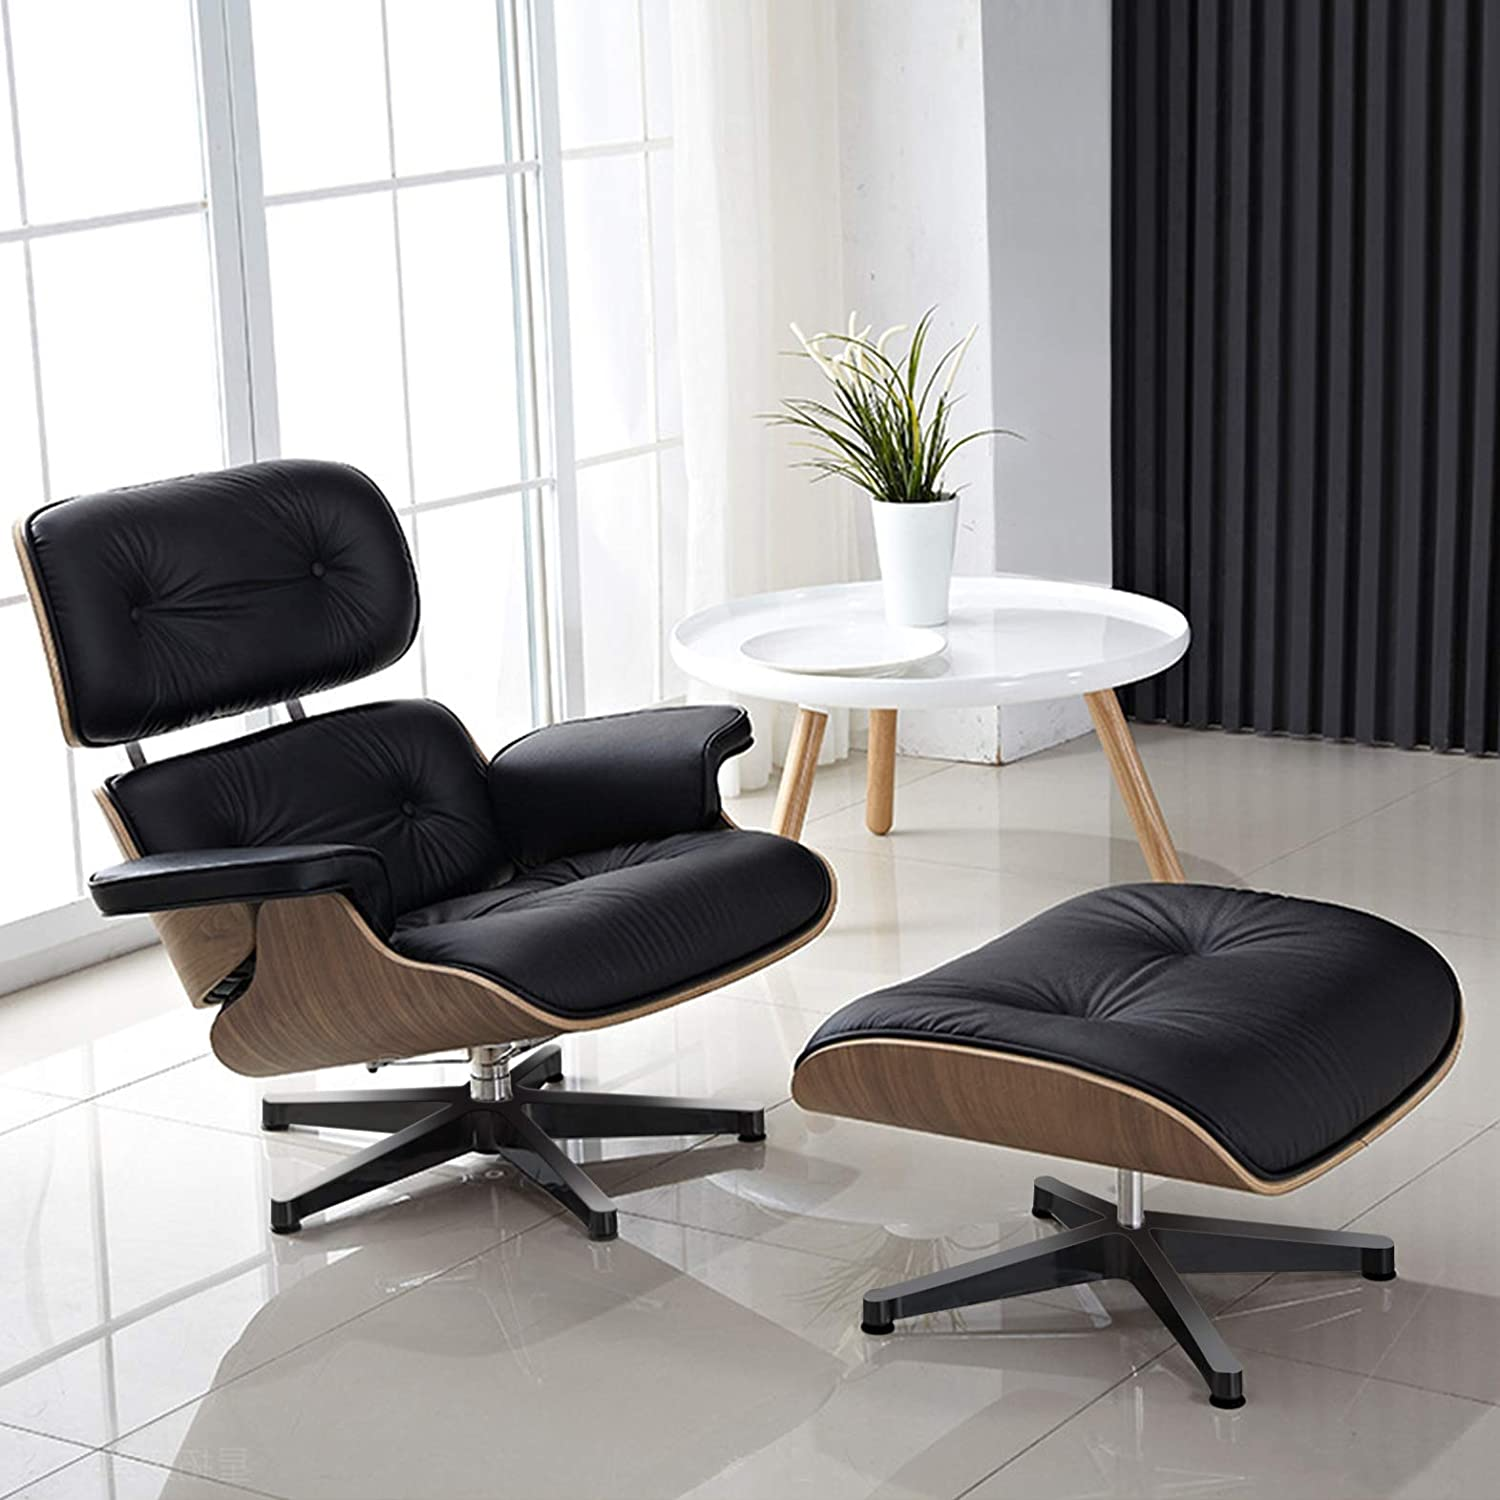 10. Mid Century Lounge Chair and Ottoman - Best For design ($609)